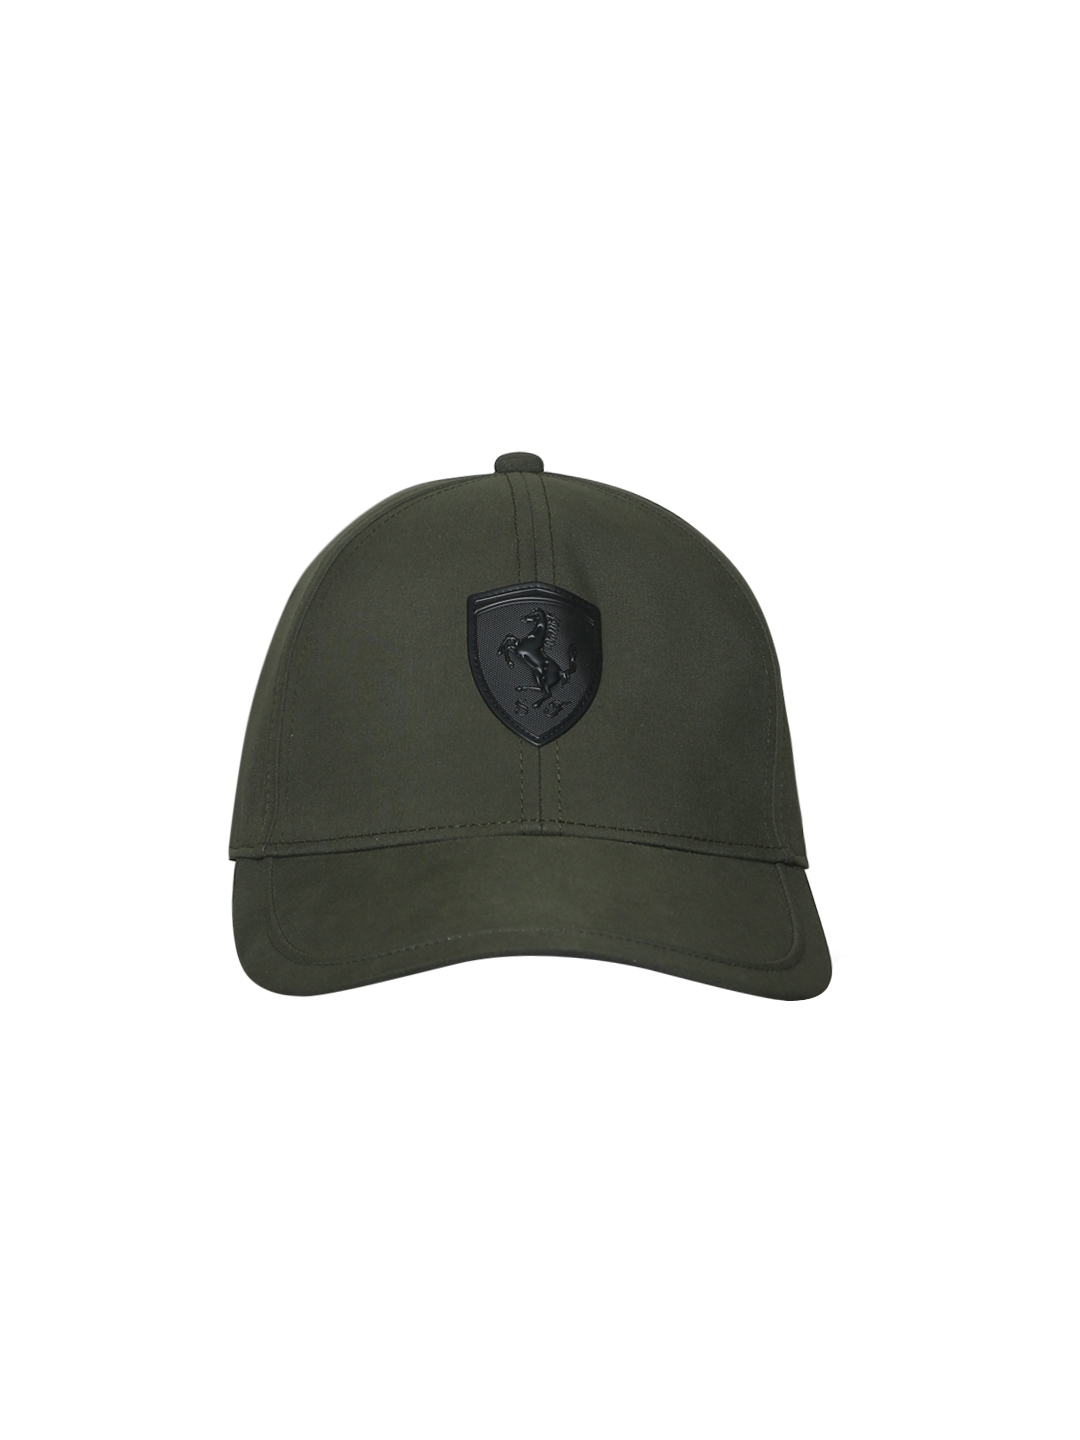 3092e7a9f1e Buy Puma Unisex Olive Green Solid SF LS Baseball Cap - Caps for ...